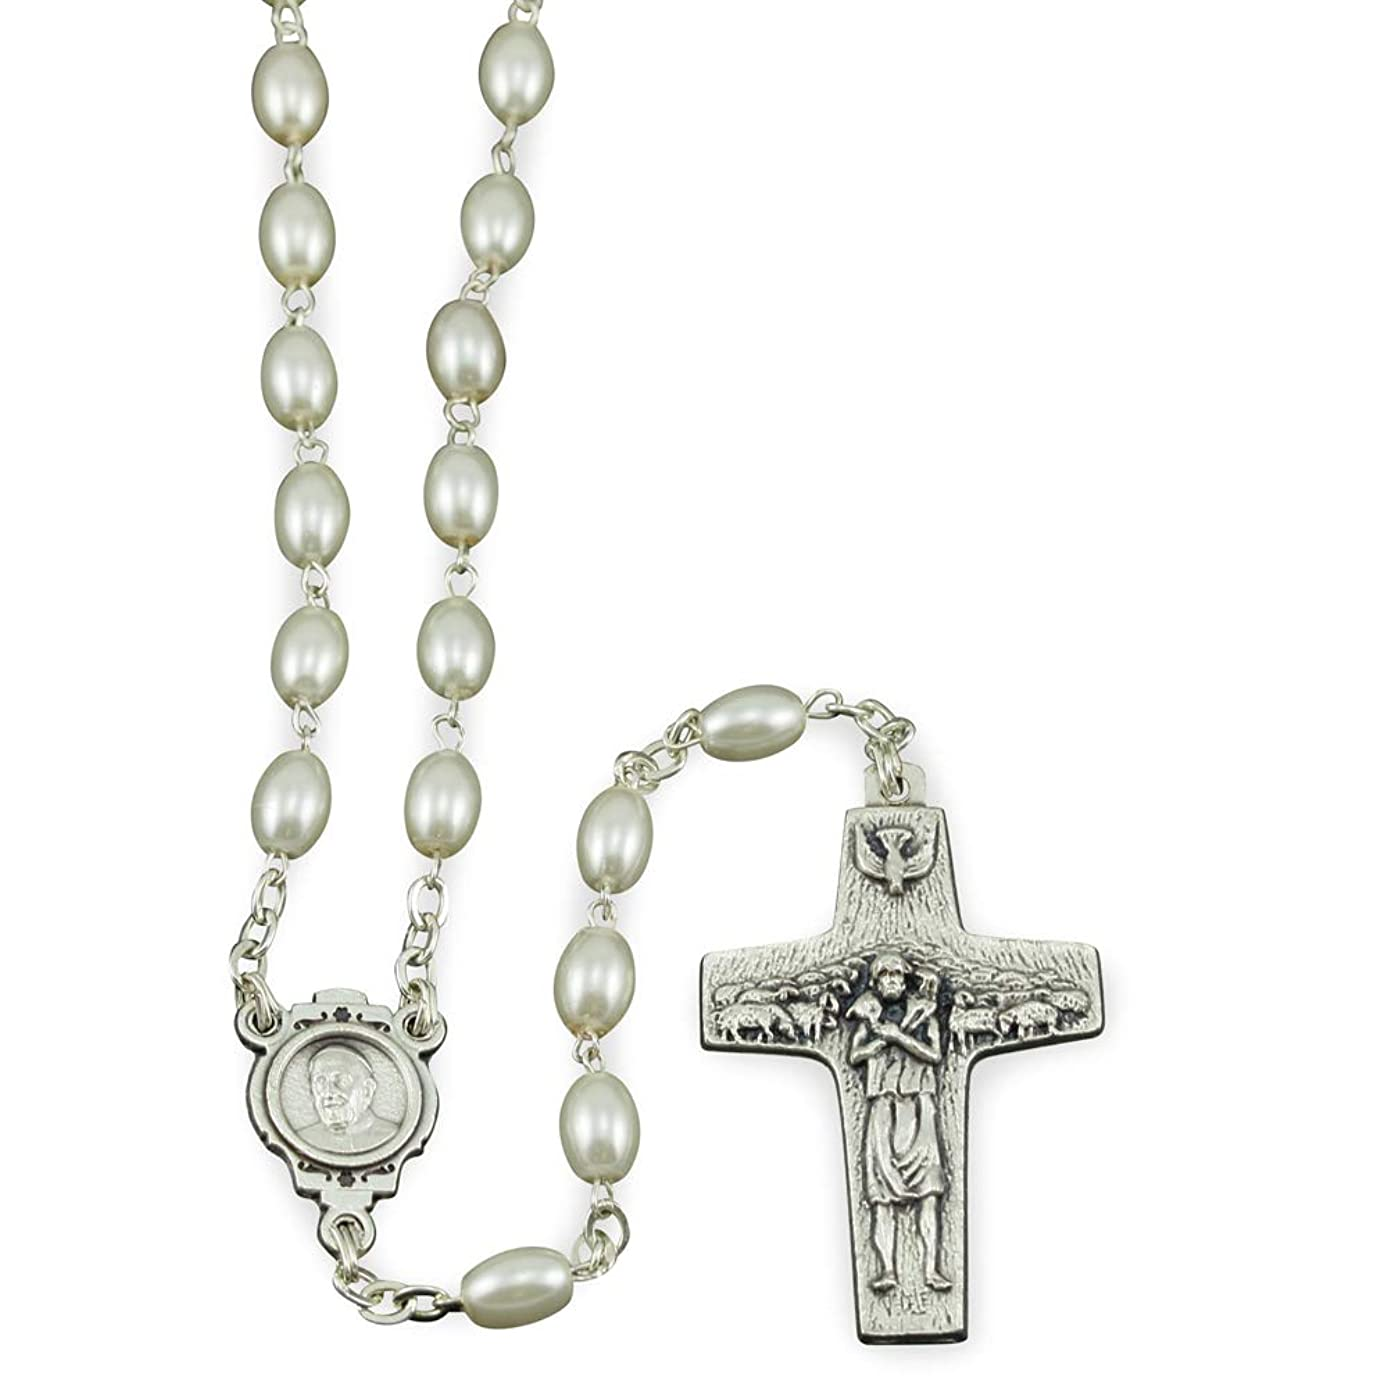 Oval White Pearl Beads Rosary